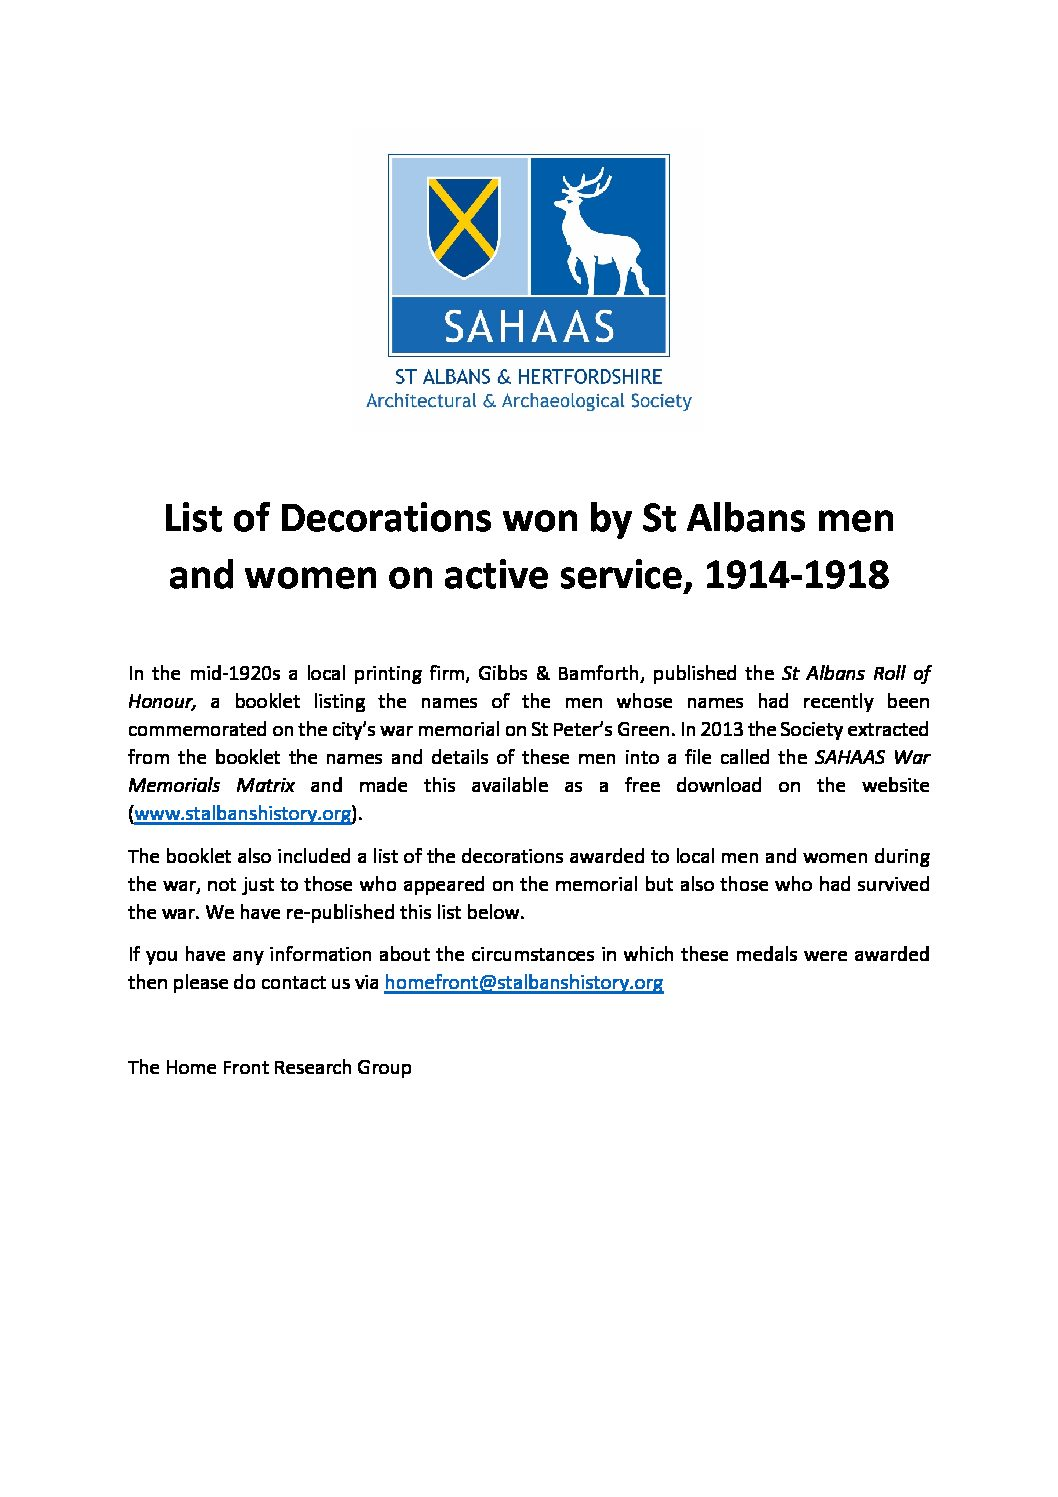 List of medals awarded to local men & women on active service, 1914-18